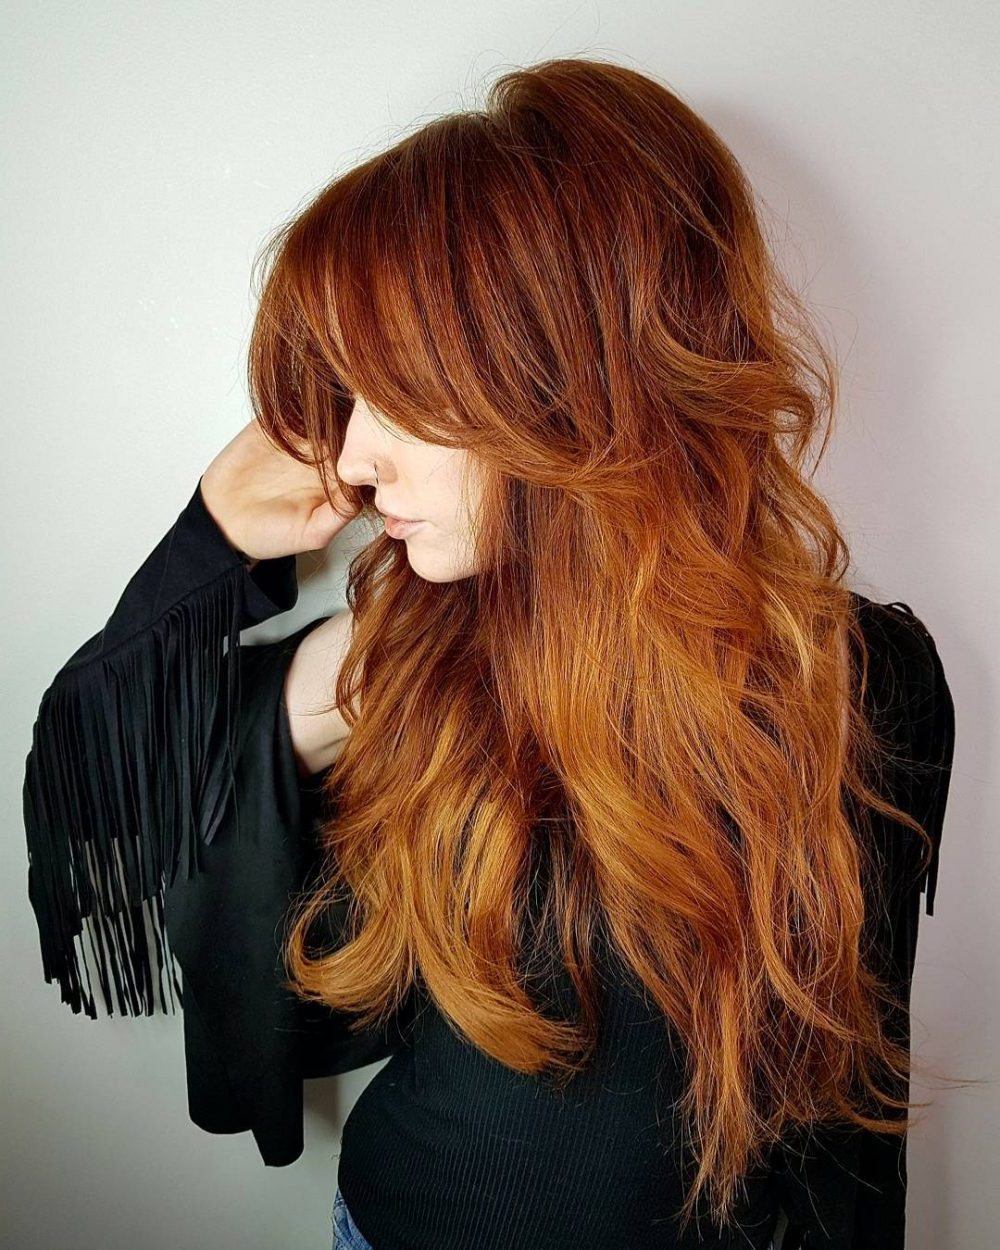 Widely Used Long Shag Haircuts With Extreme Layers In Long Shag Haircuts: 36 Examples For (View 18 of 20)